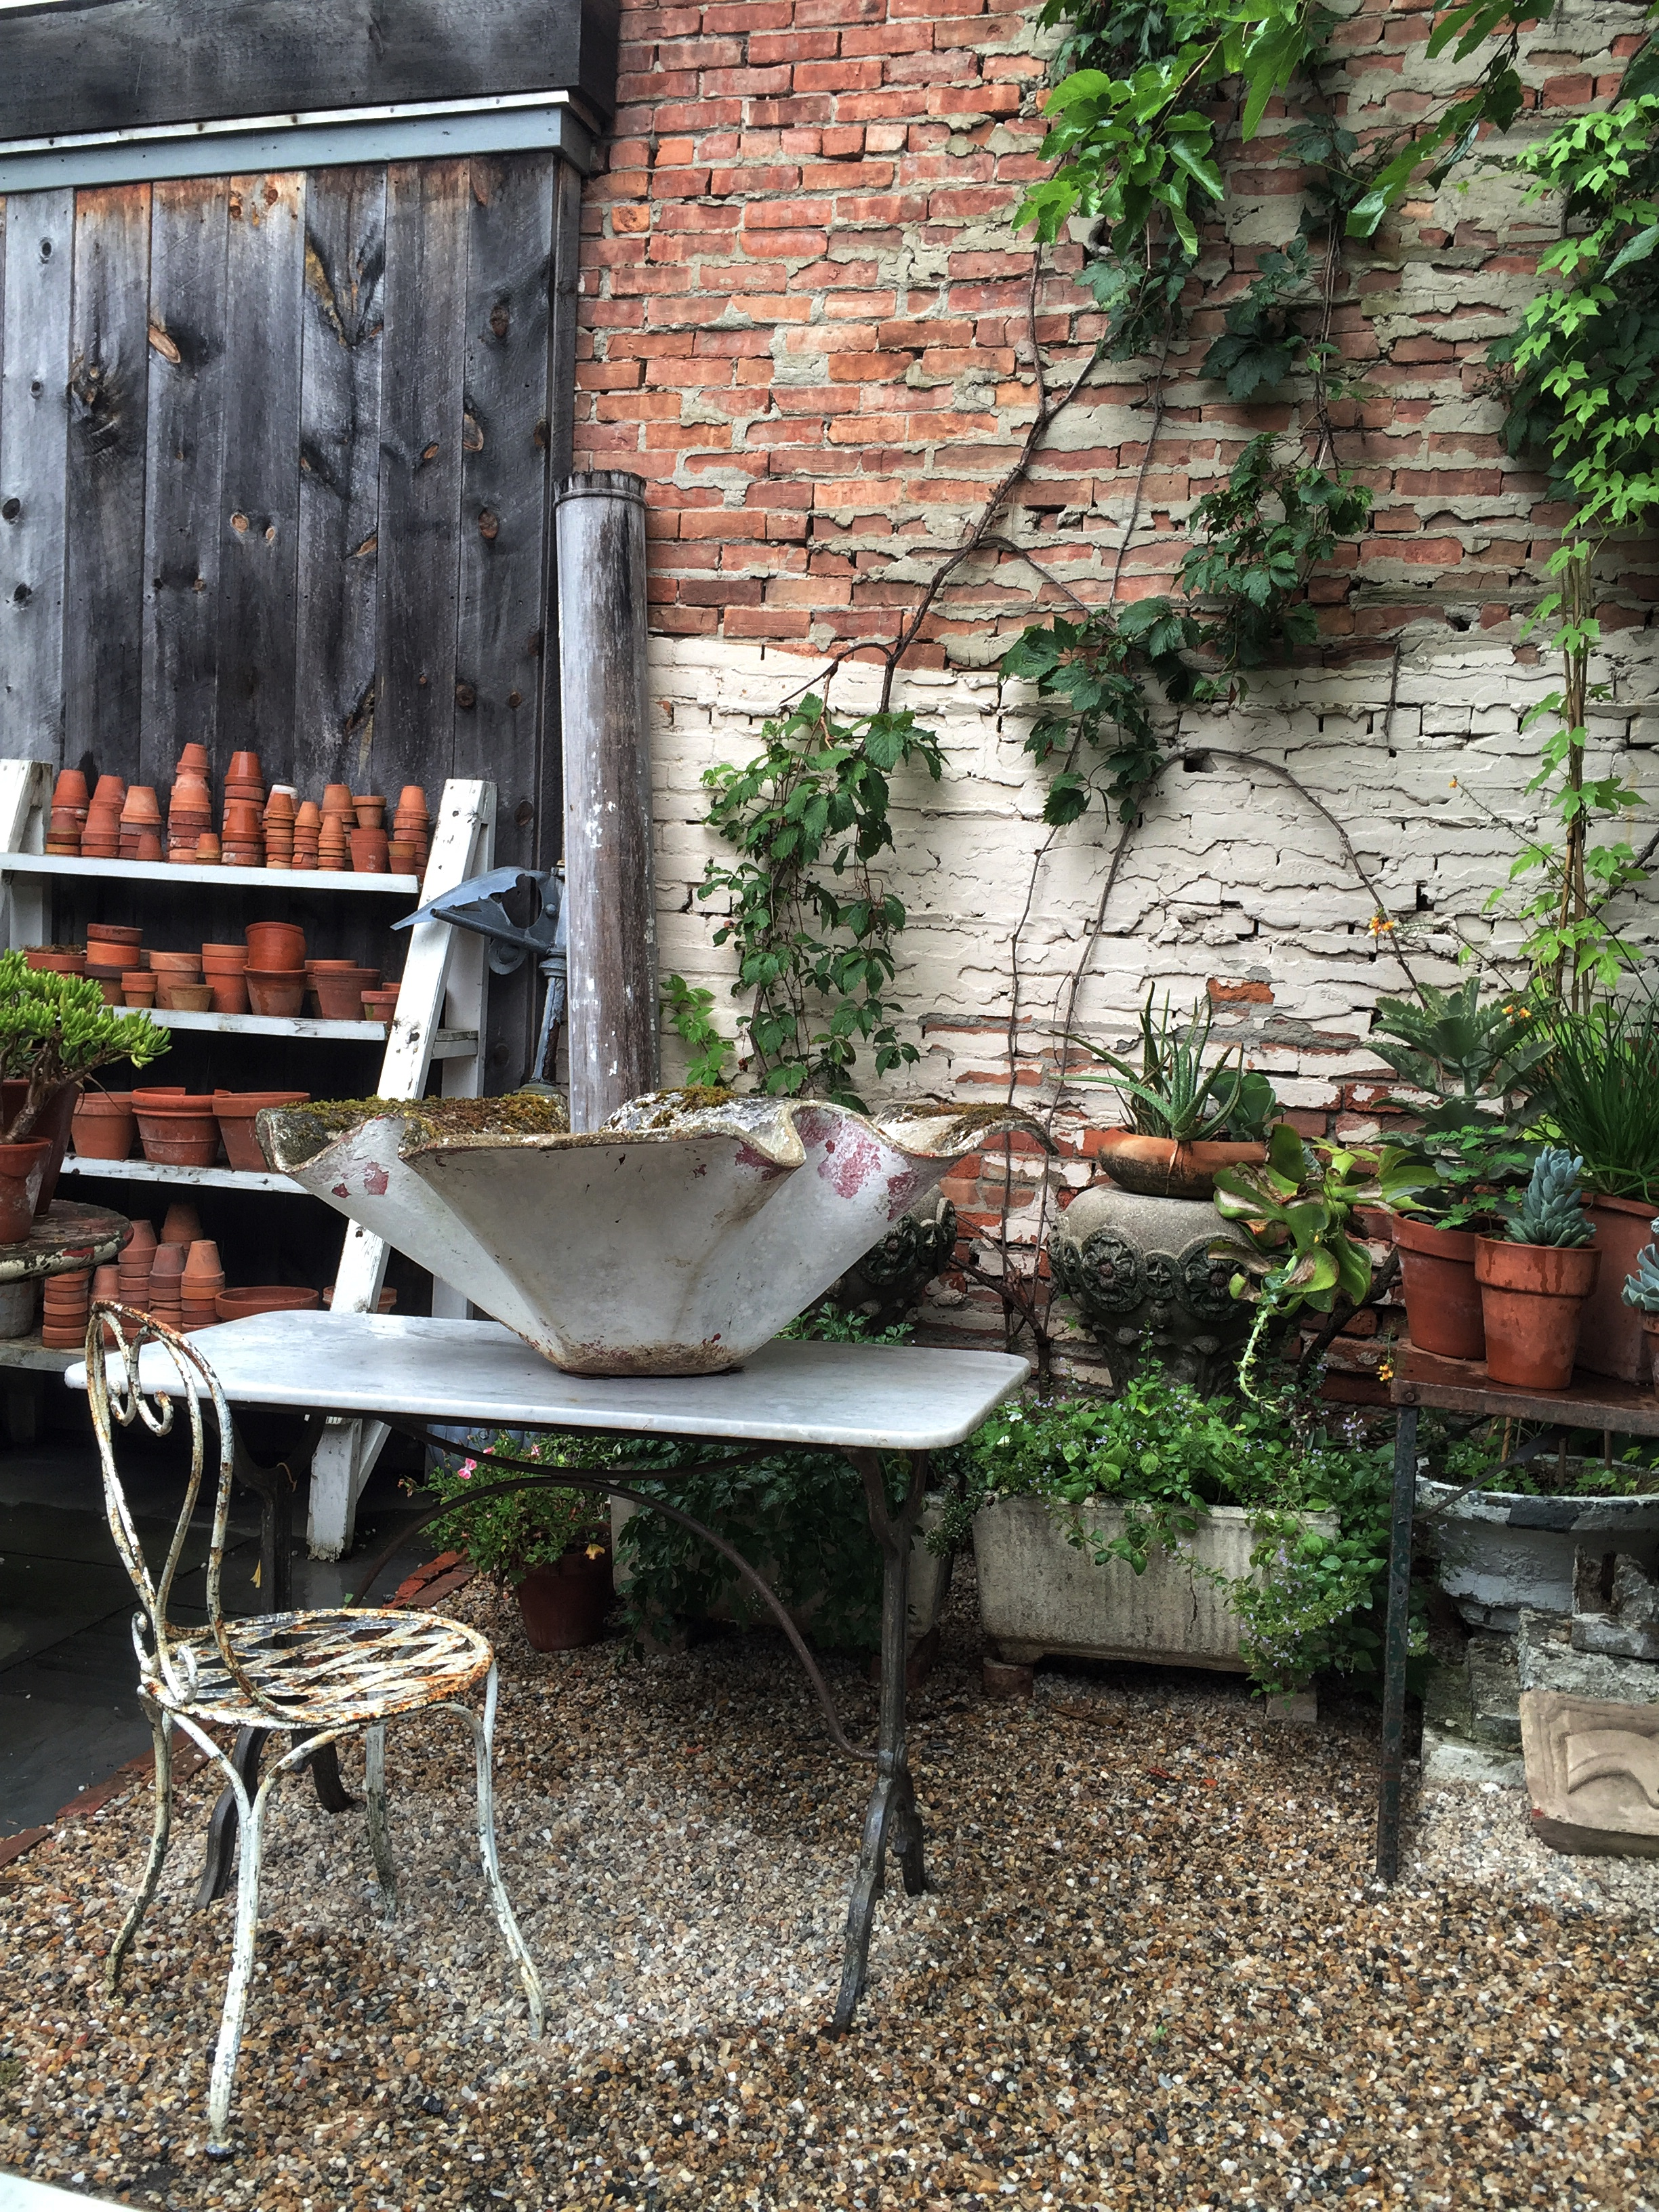 Just like in Provence, the courtyard at Red Chair Antiques